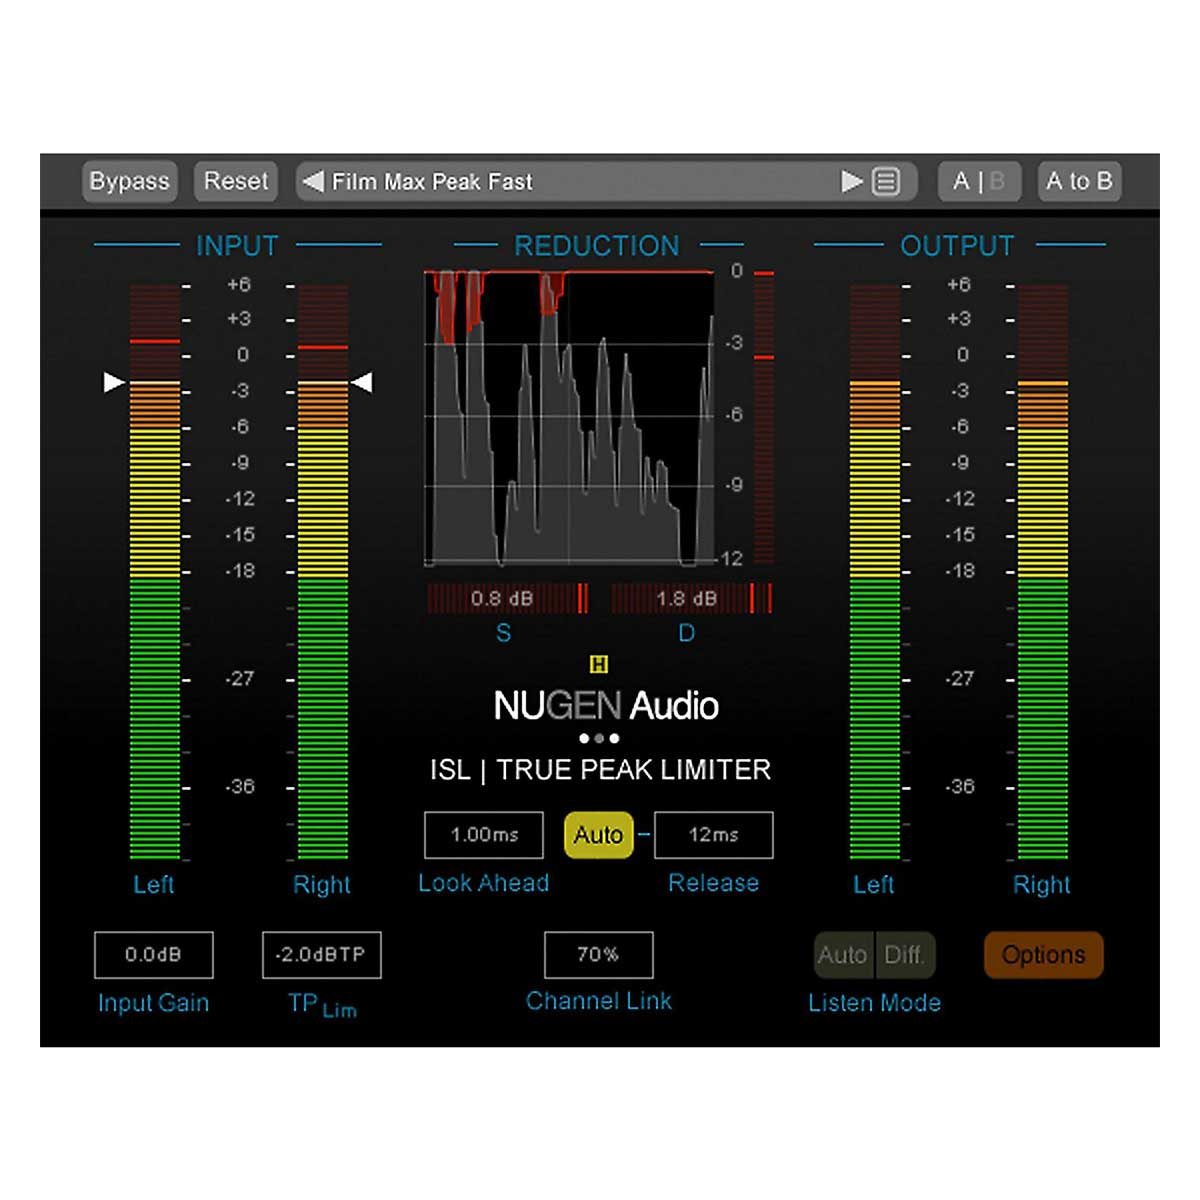 NUGEN Audio ISL Precision True Peak limiter for Mastering & Post Production